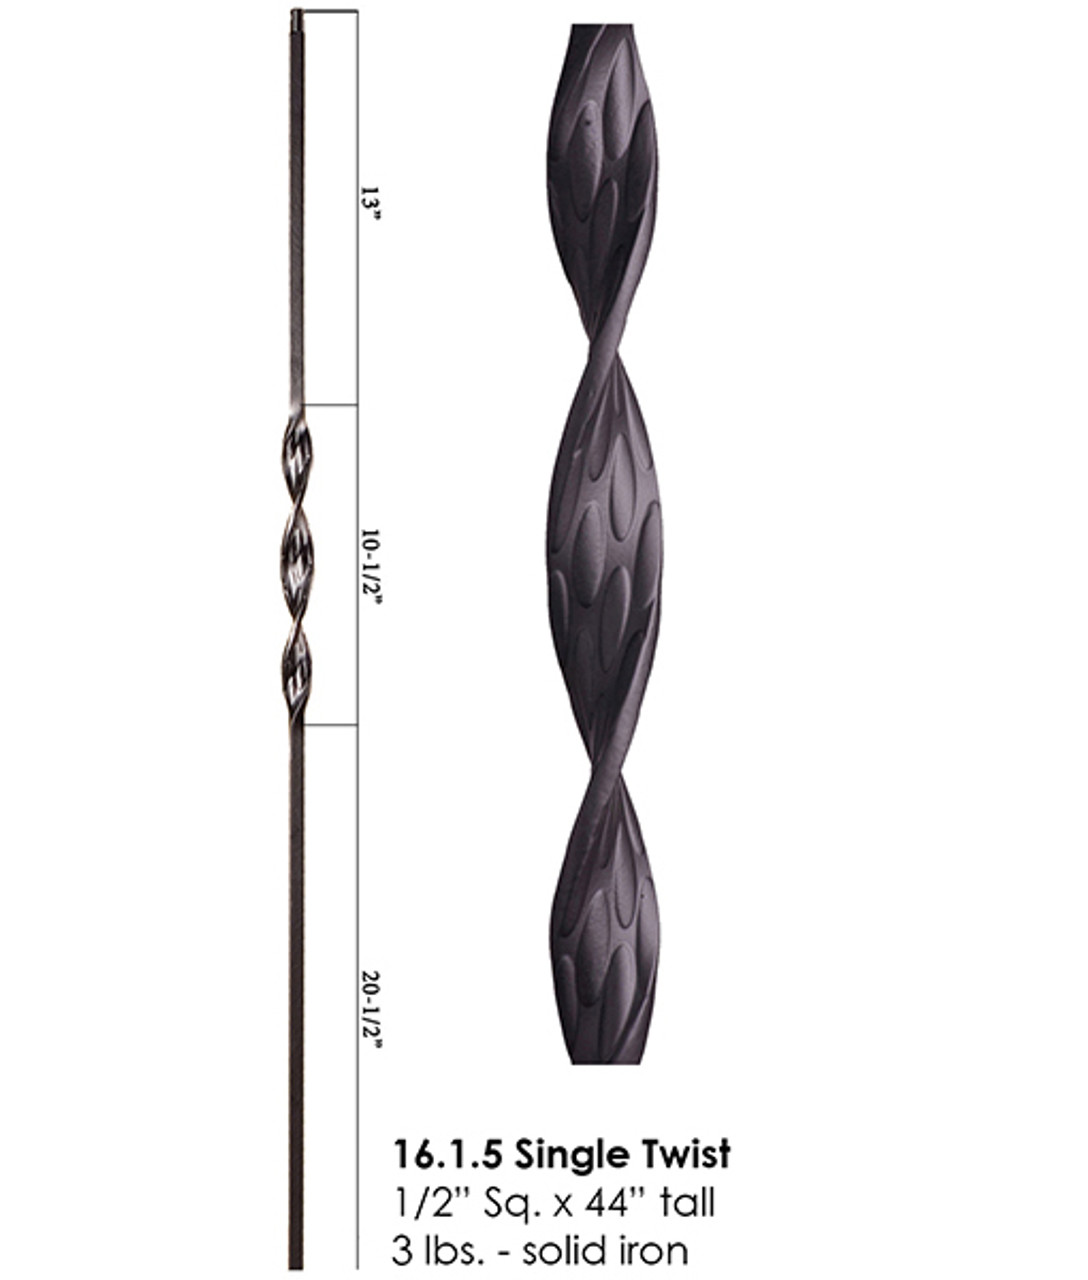 HF16.1.5 Single Ribbon Iron Baluster